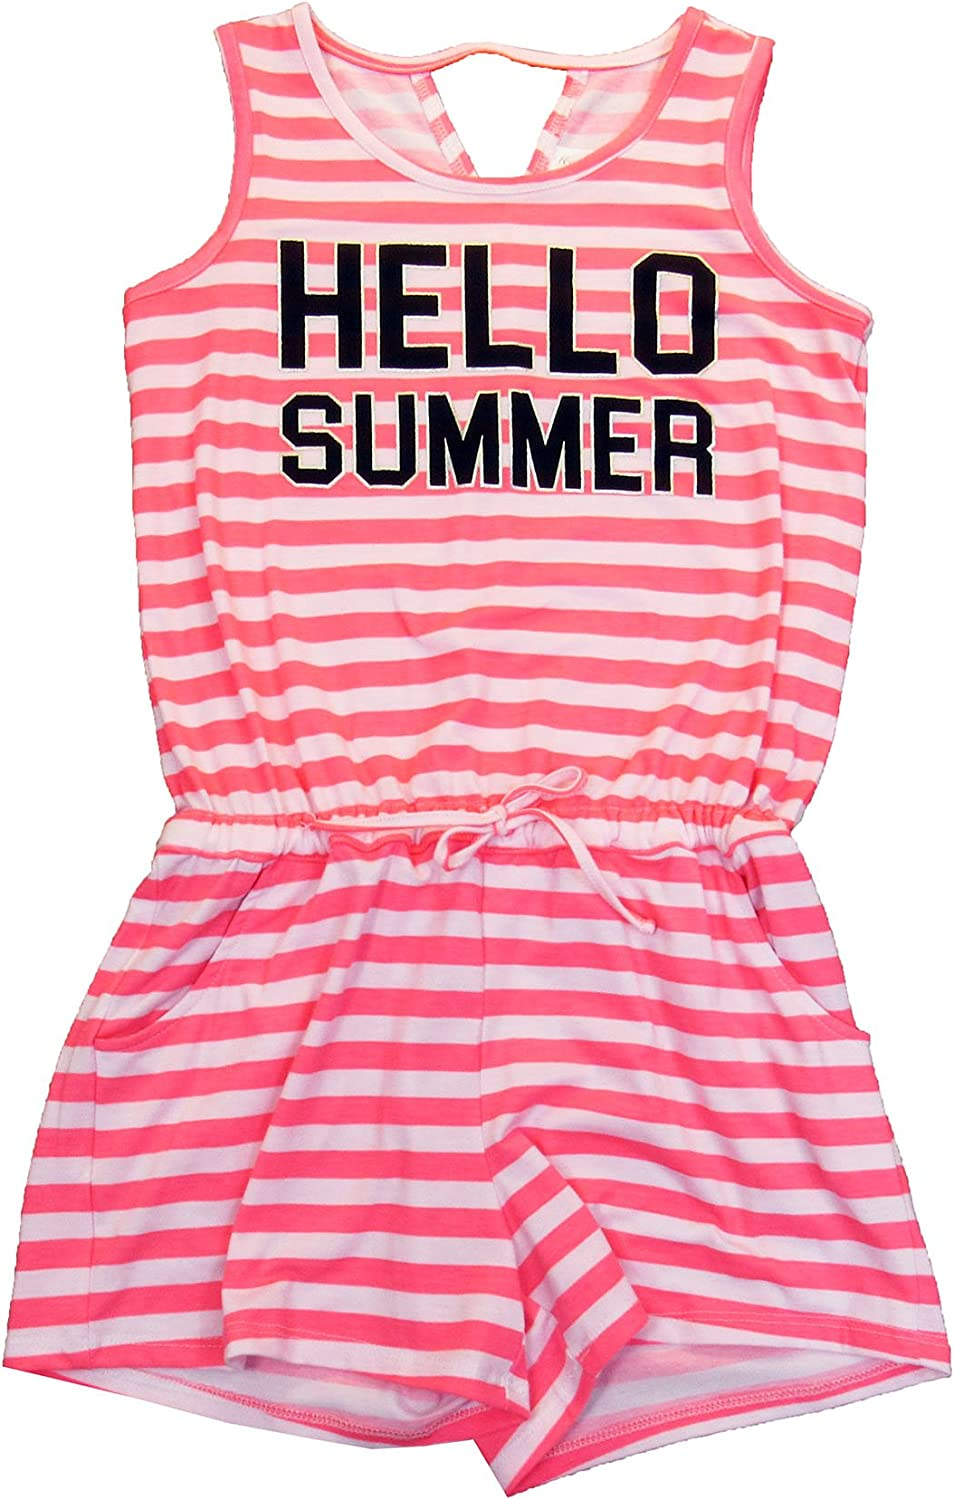 7-16 Ideology Big Girls Graphic-Print Summer Romper Striped